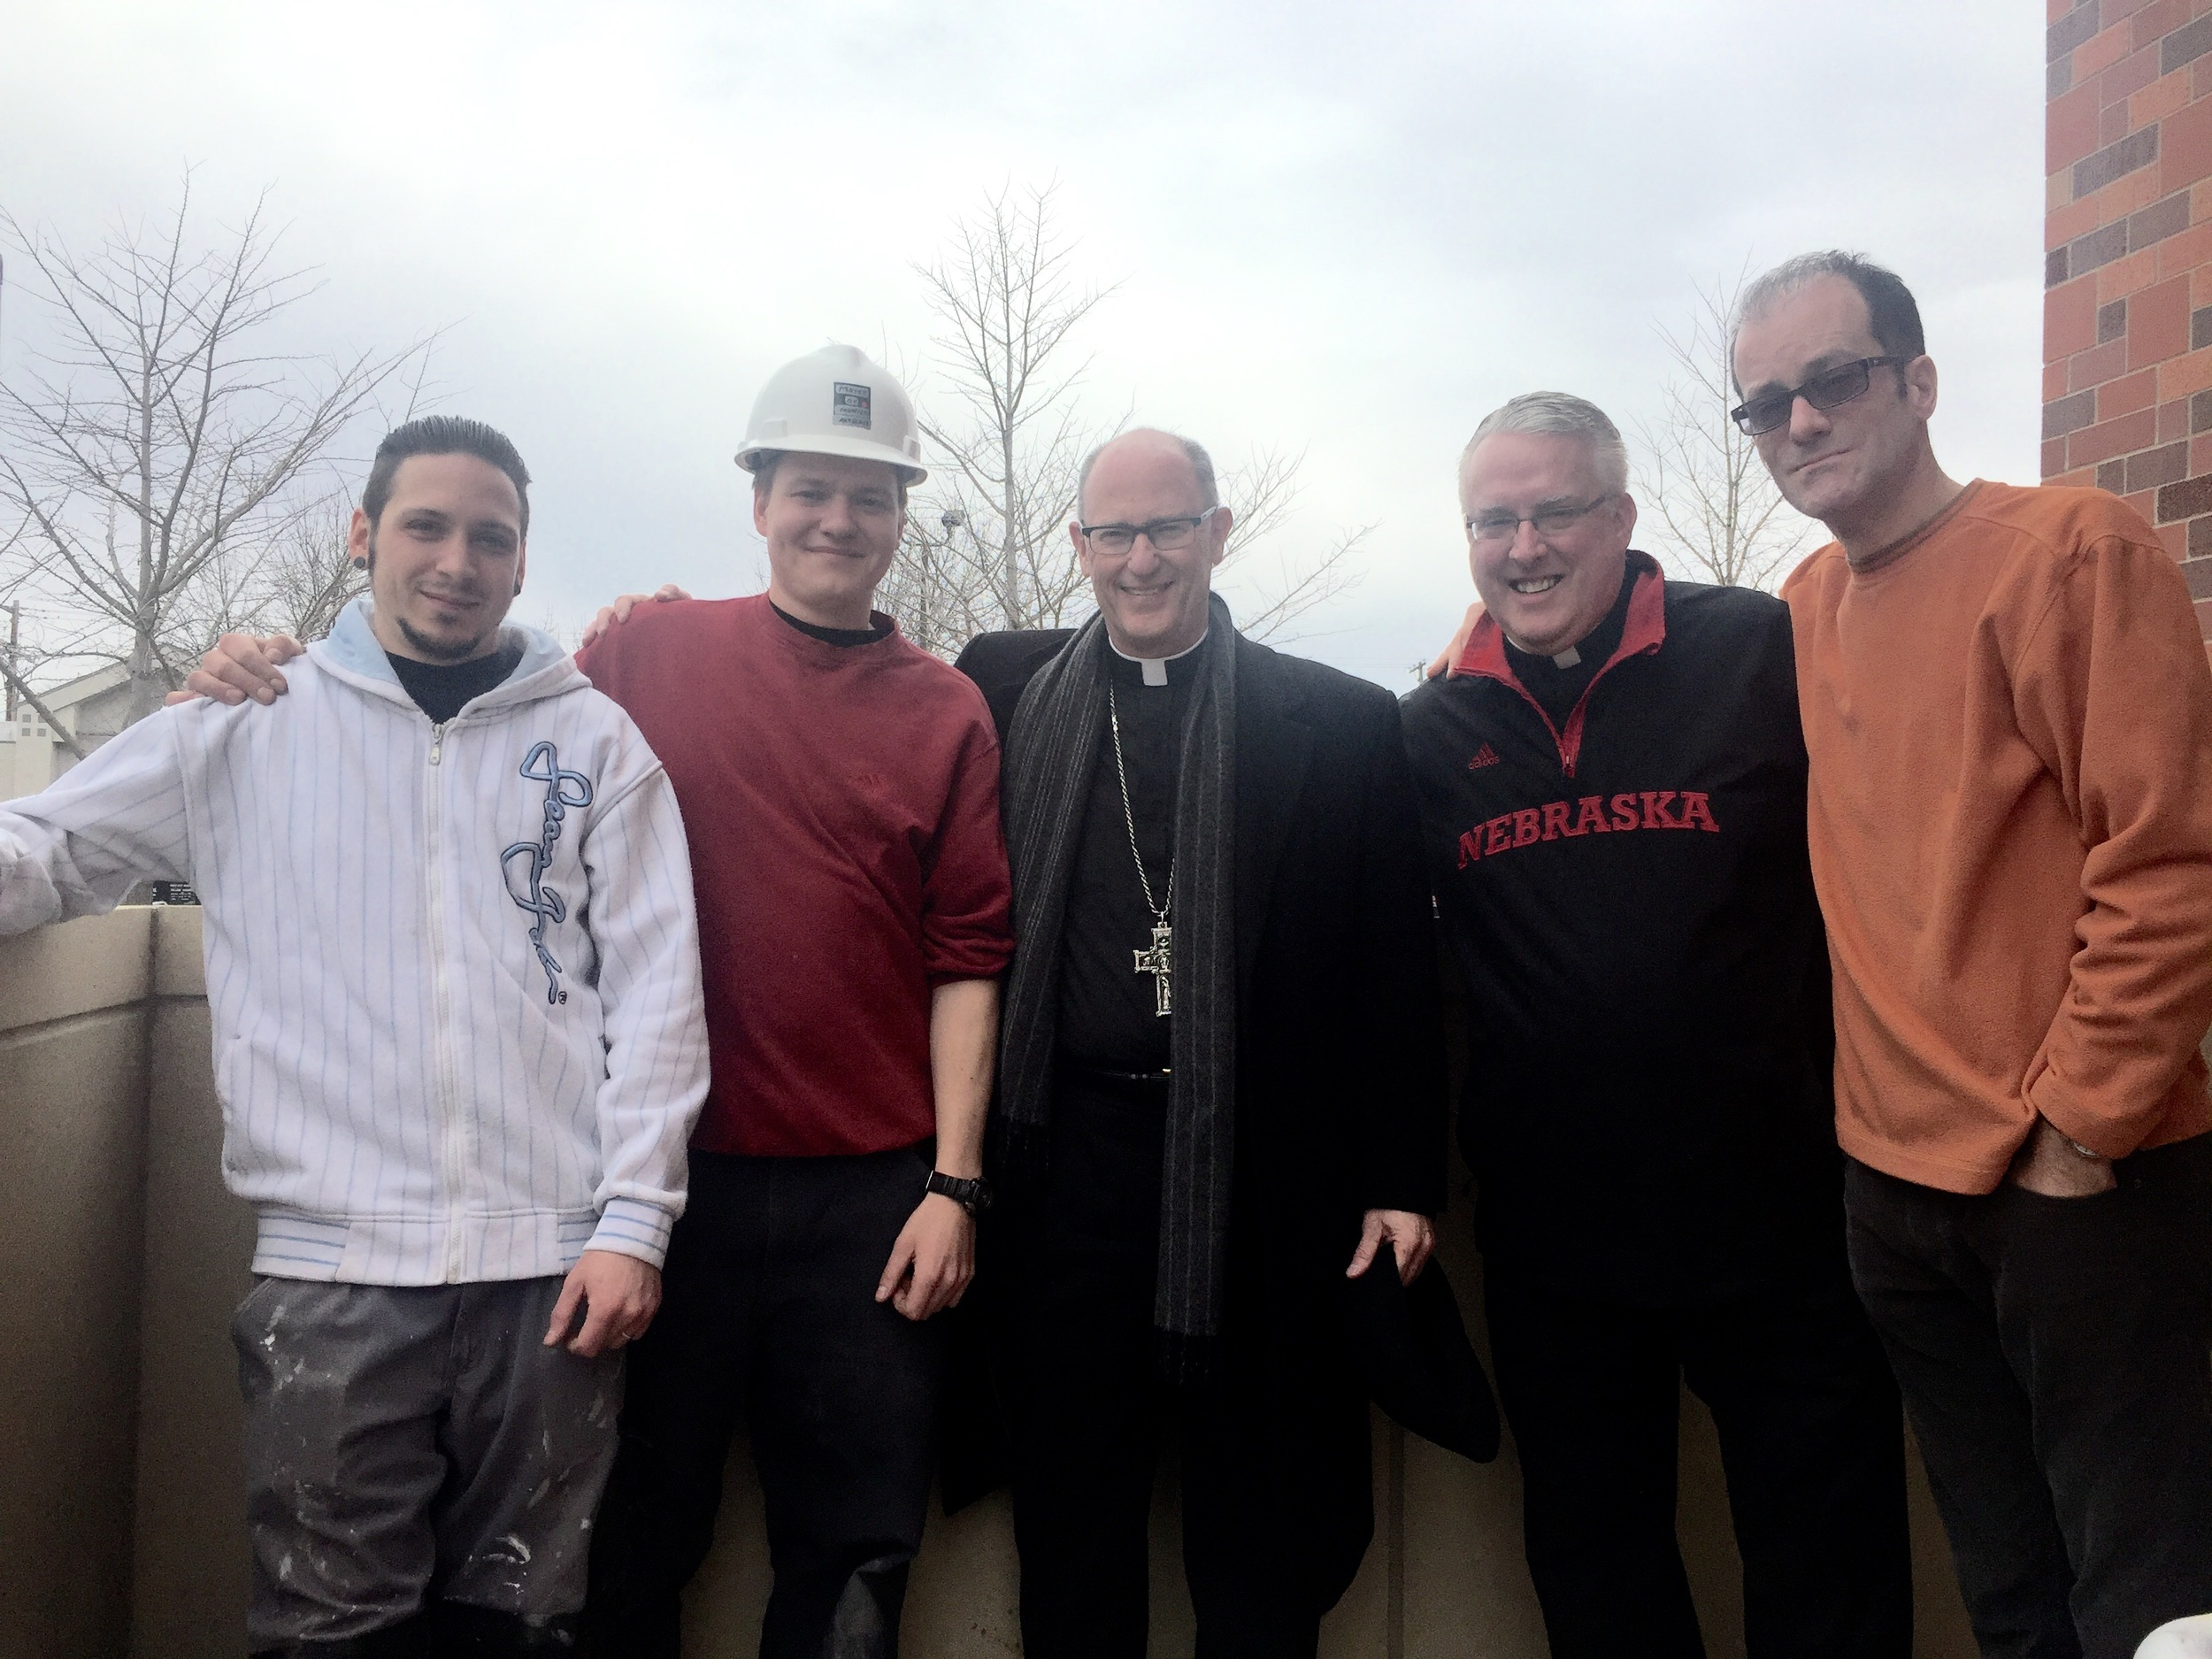 Bishop Conley stopped by to see the installation process